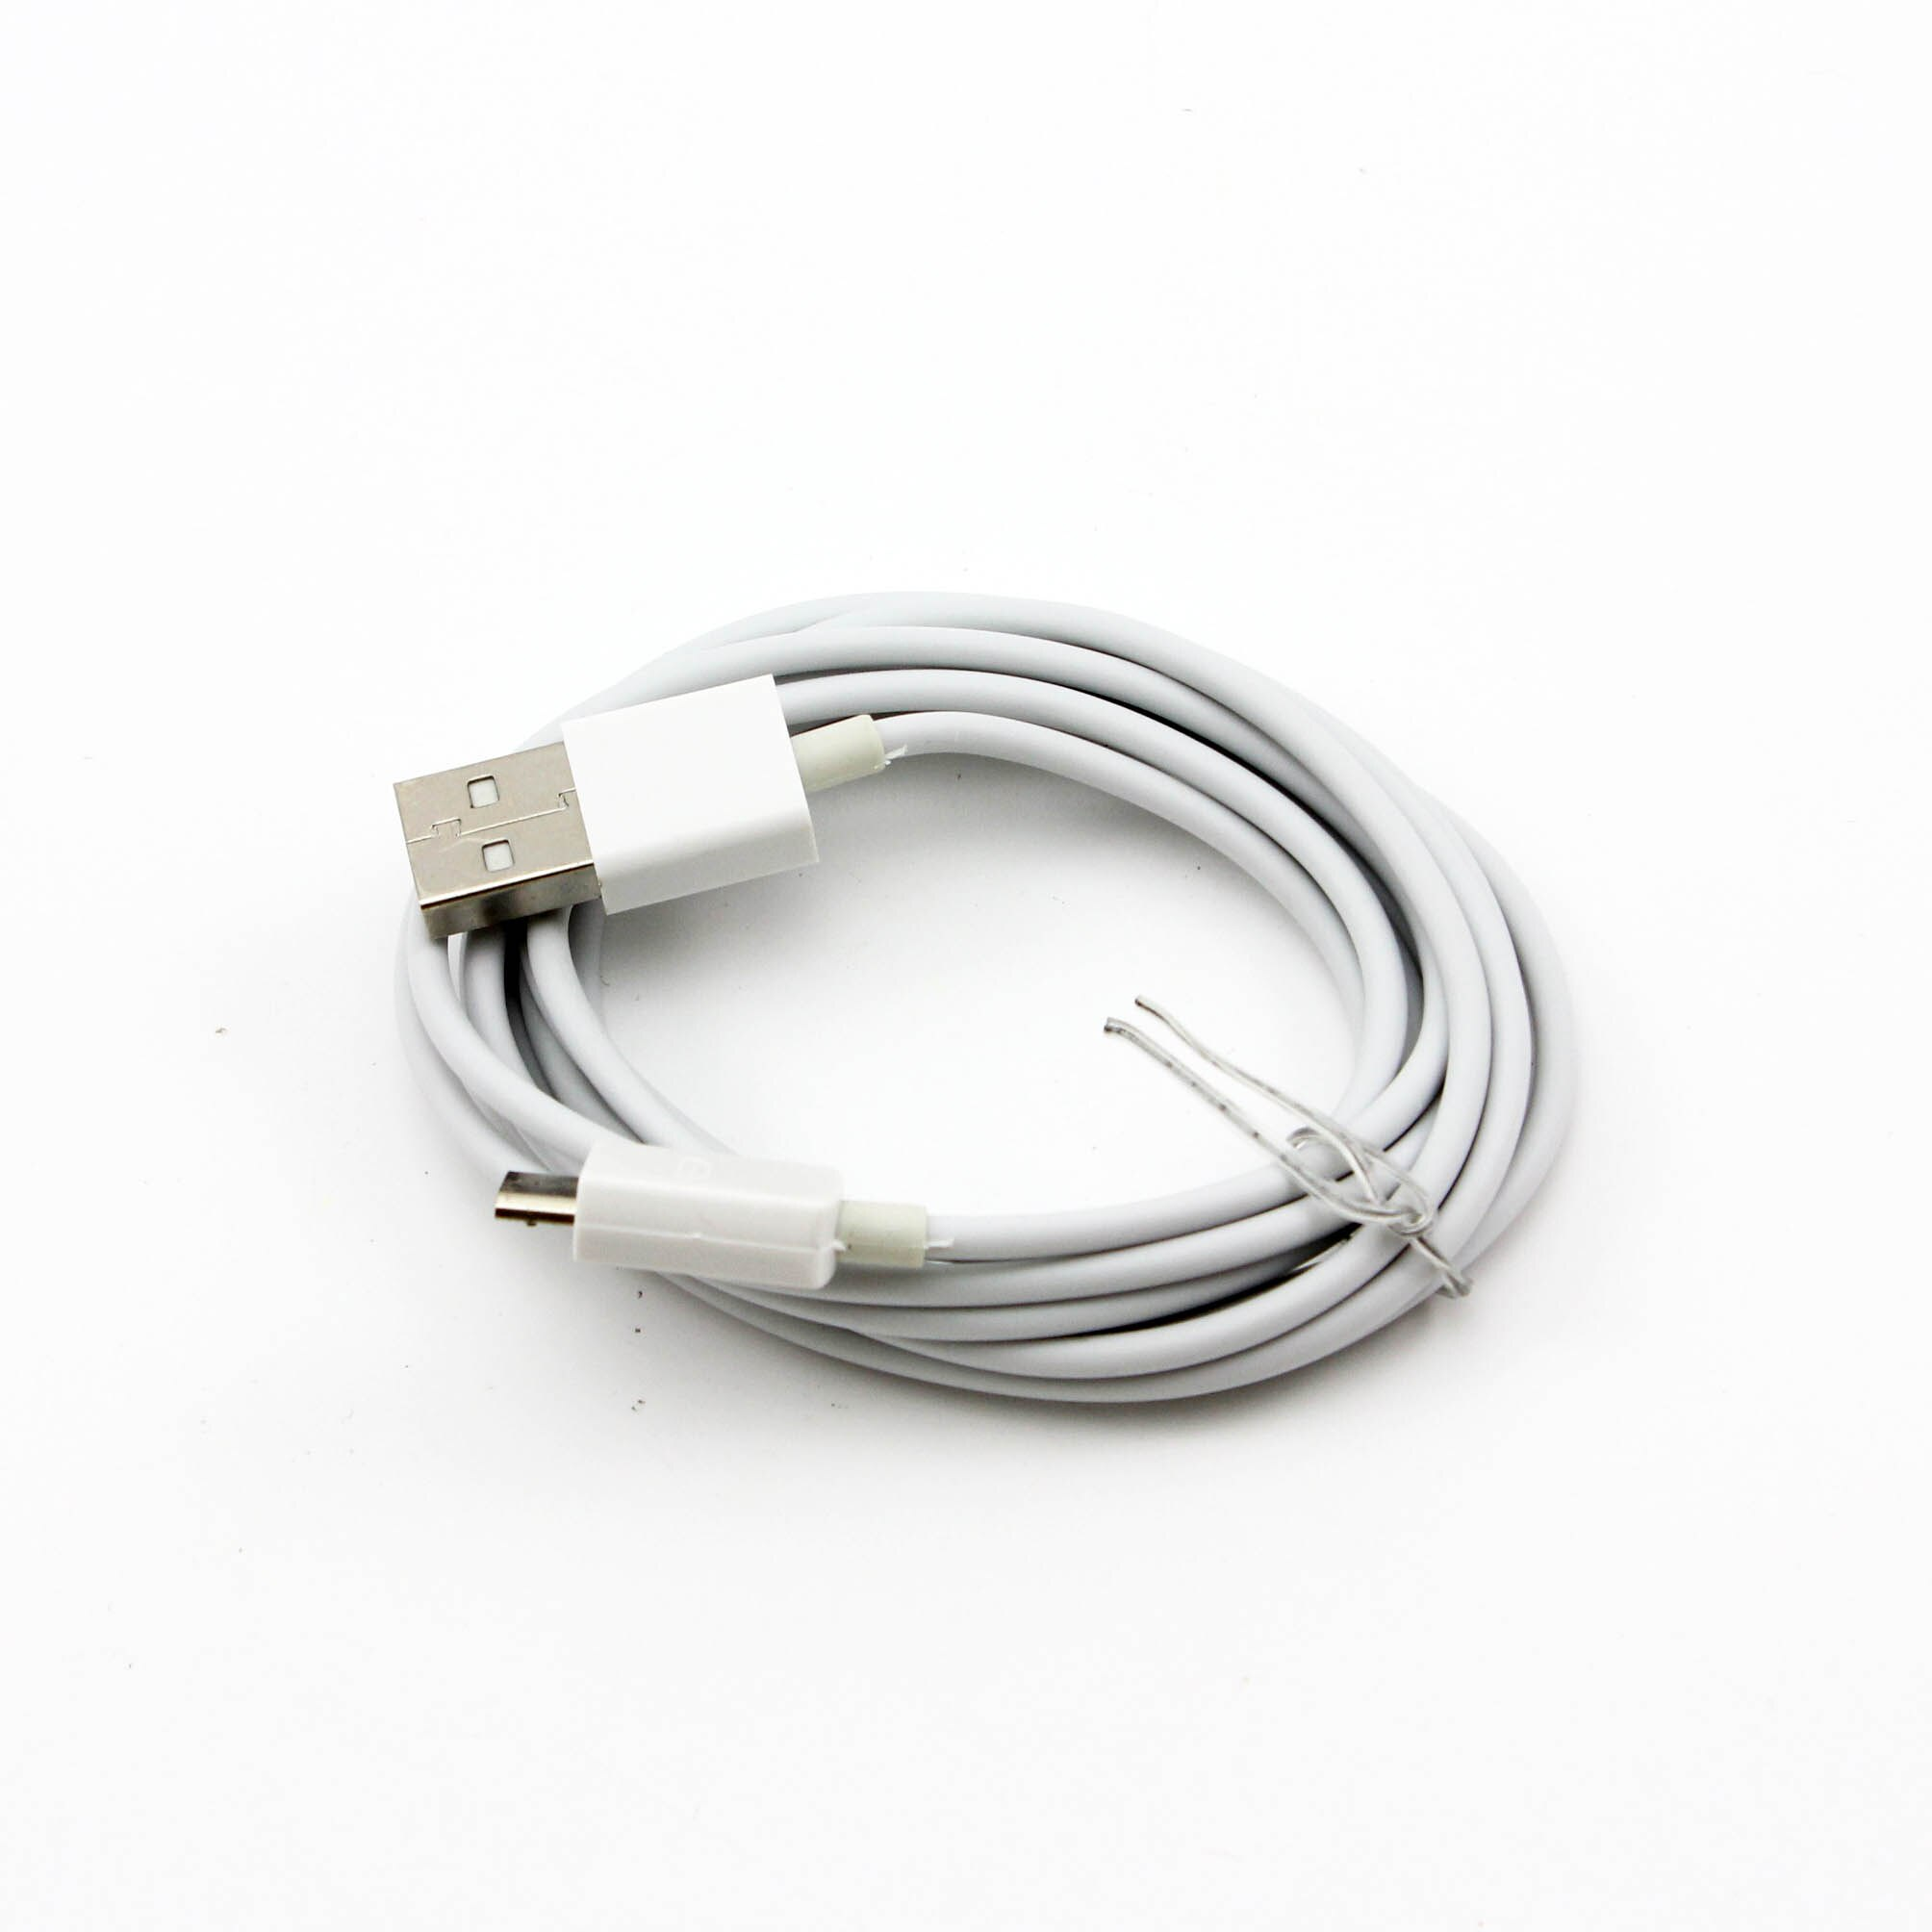 SCO White 2M/6FT Micro USB Sync Data Charger Cable Cord For HTC OneX Nokia Lumia 900